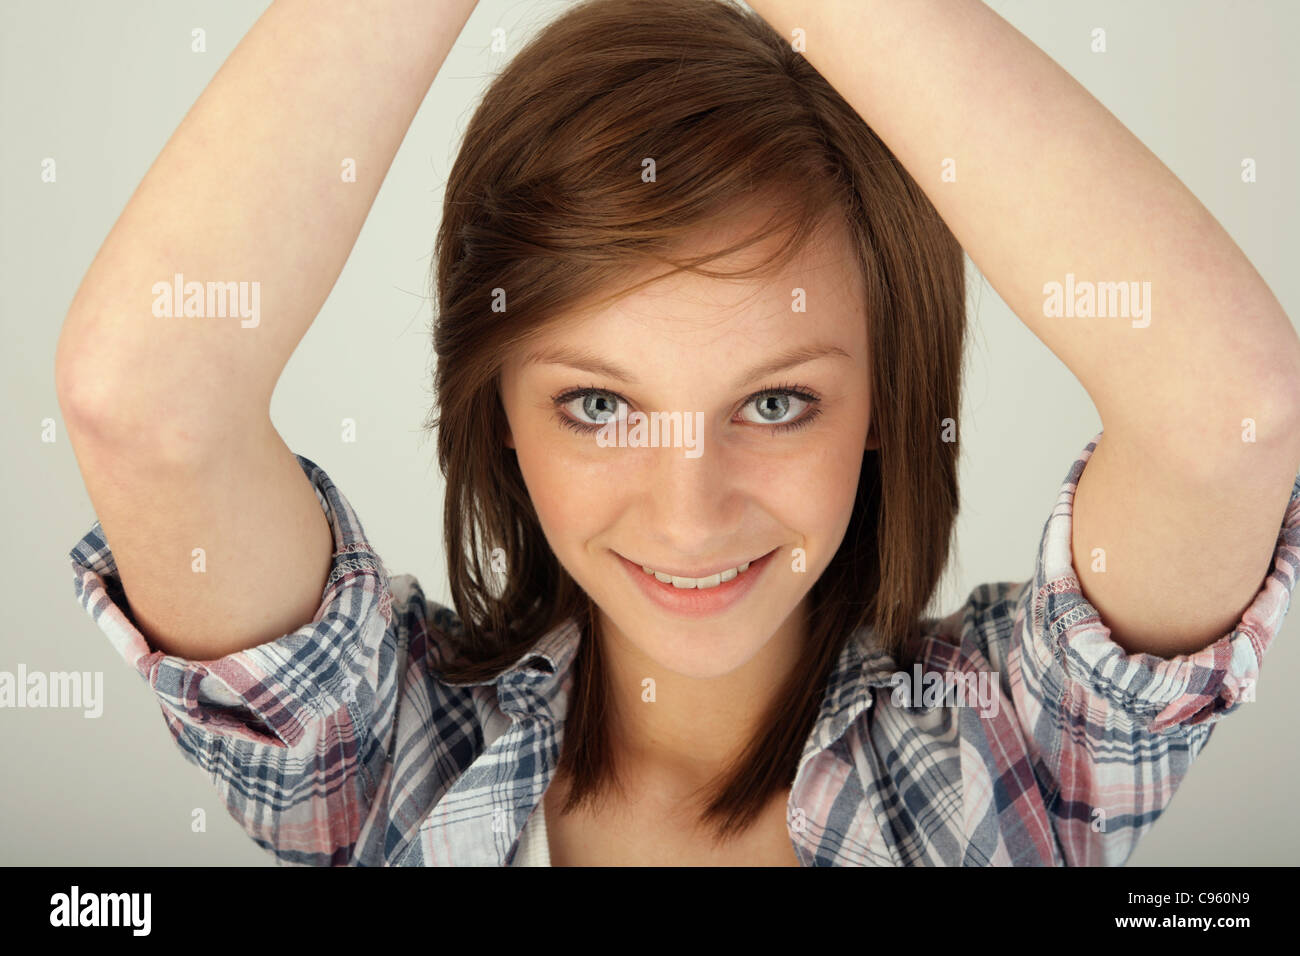 Teenage girl with her arms raised above her head. Stock Photo